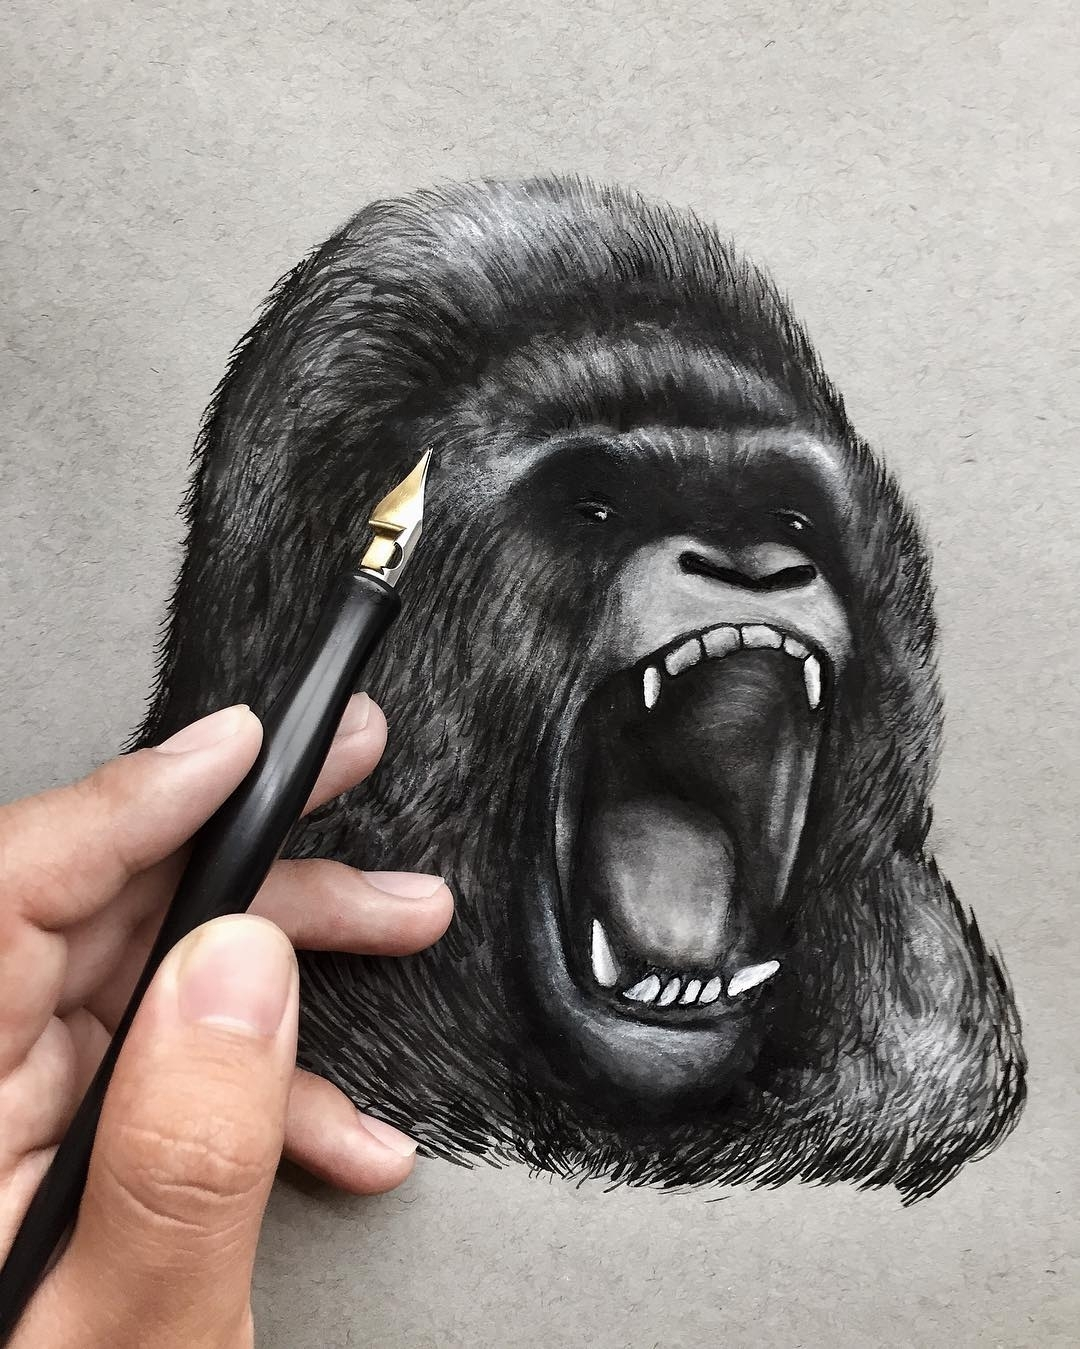 03-Silverback-Gorilla-Jonathan-Martinez-Art-of-the-Endangered-Paintings-and-Drawings-www-designstack-co